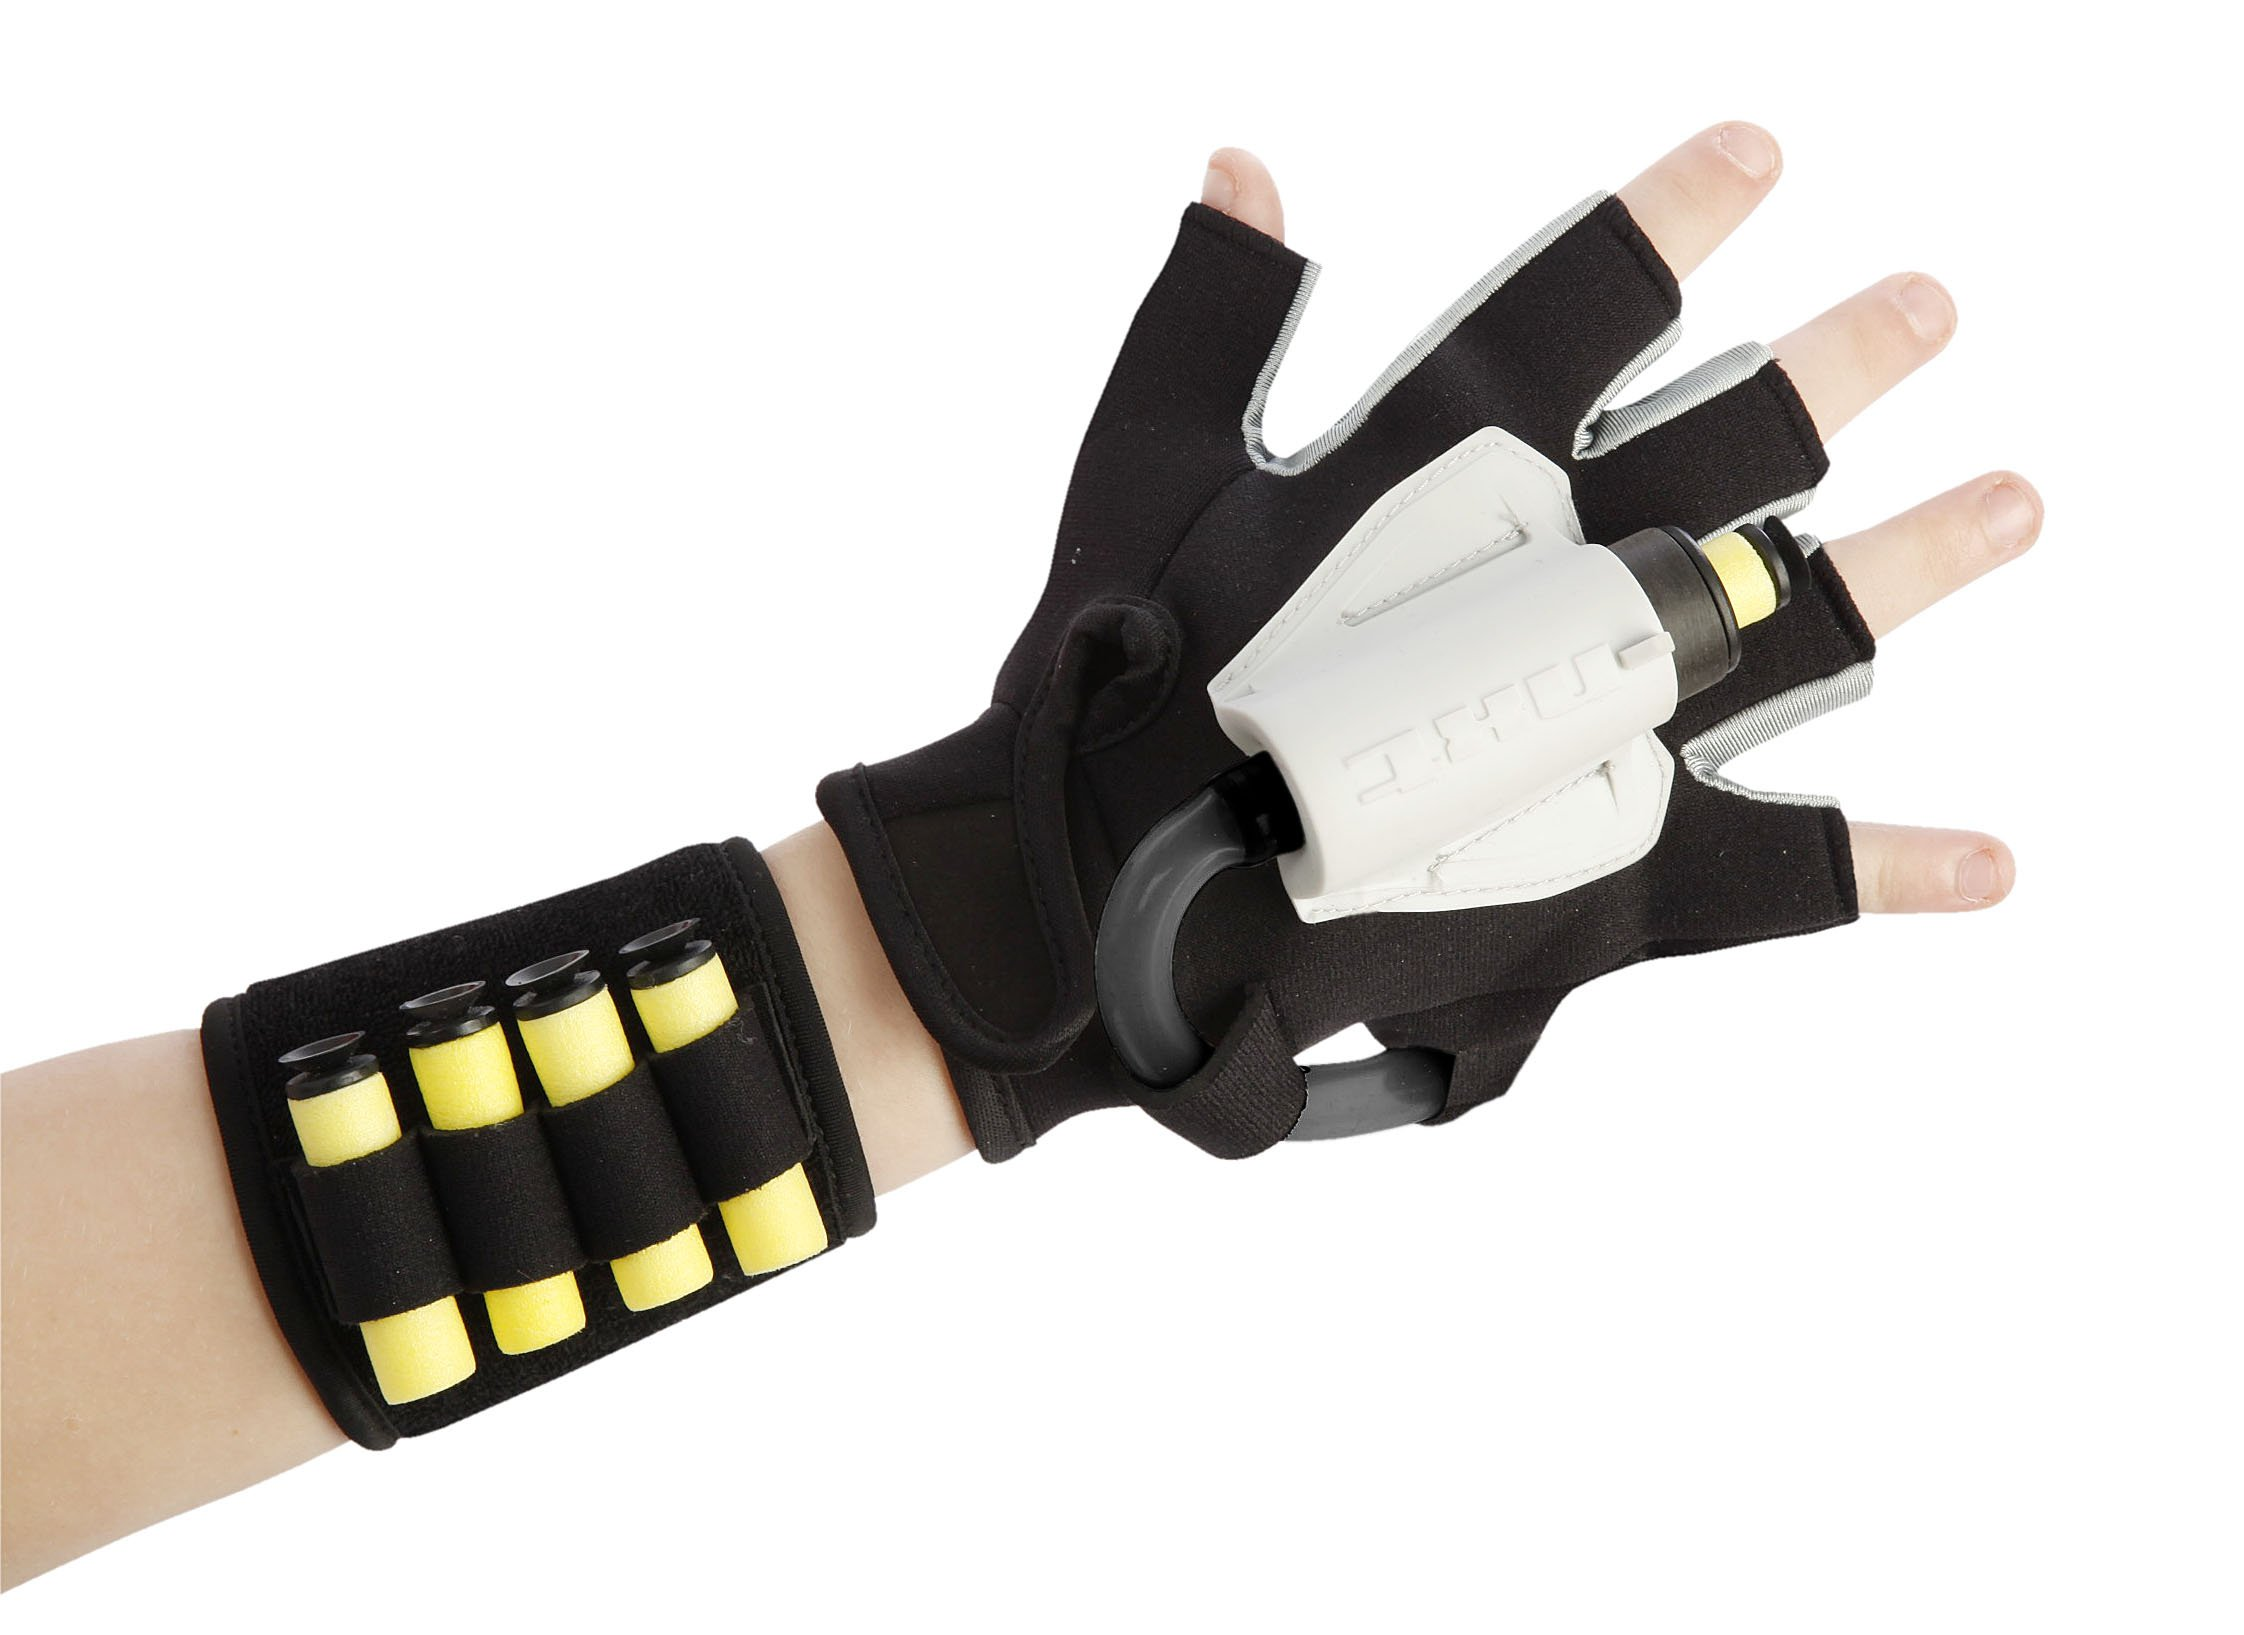 Nxt Generation C-1 Spider Glove with Foam Dart Launcher - Accurate Glove for Kids on the Run - Comes with Wristband Quiver & Suction Cup and VELCRO Foam Darts